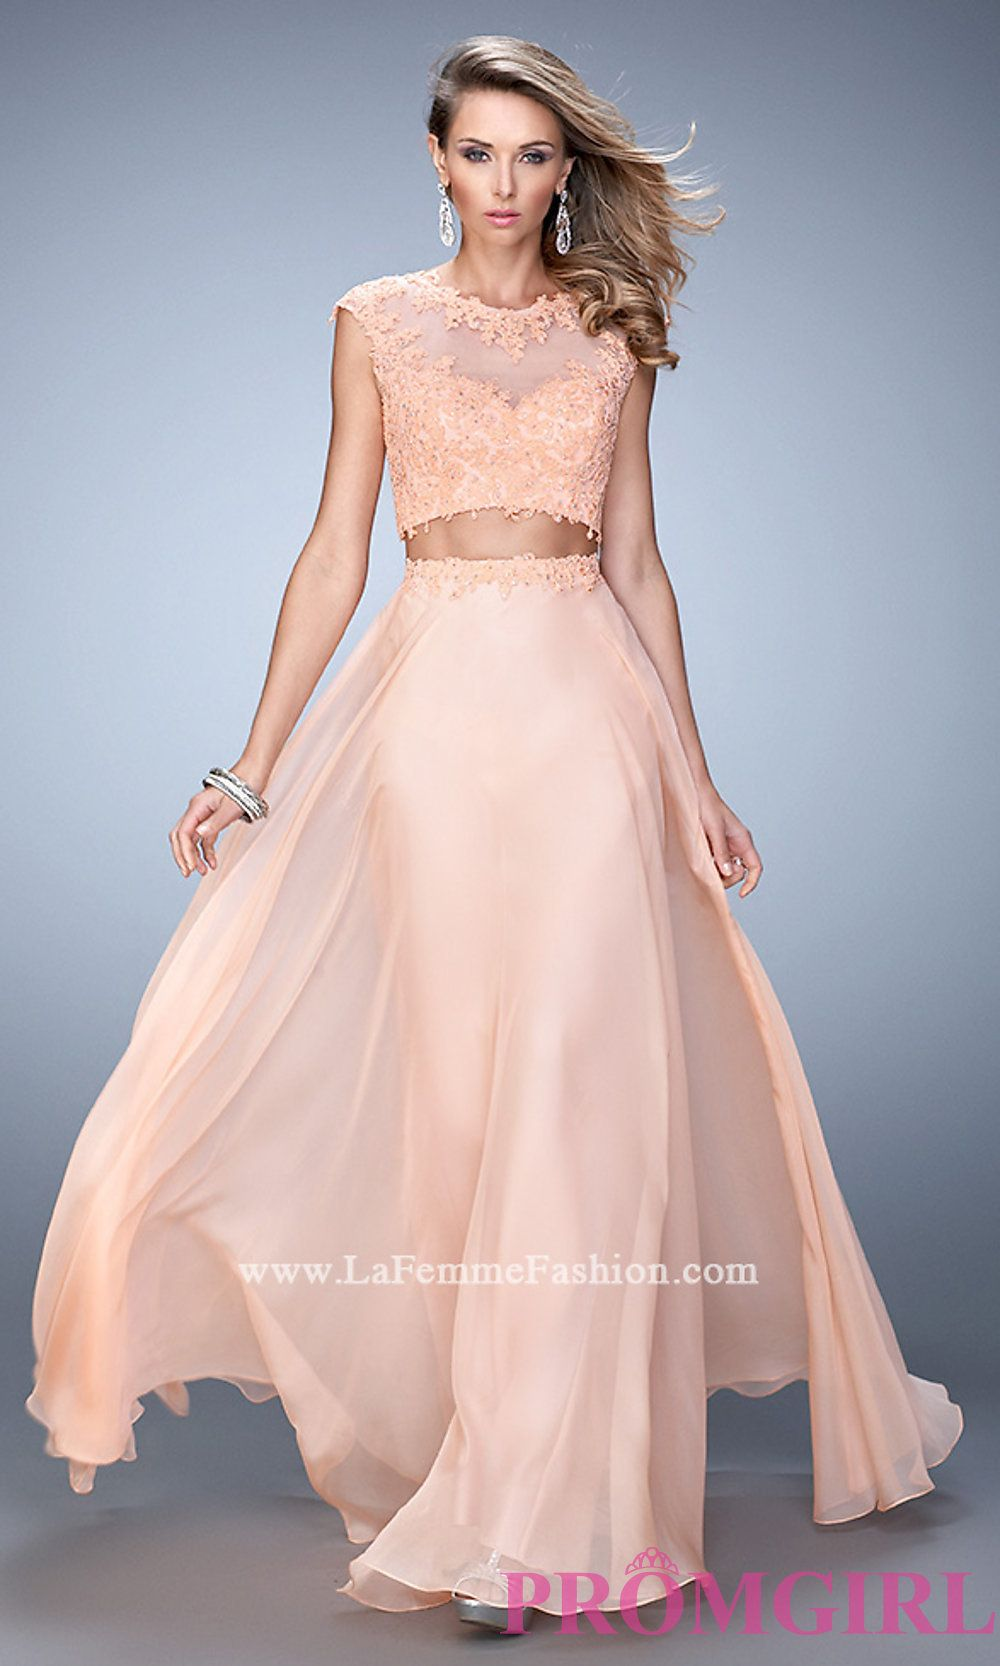 High Neck Two Piece La Femme Dress - Long two piece prom dress with ...